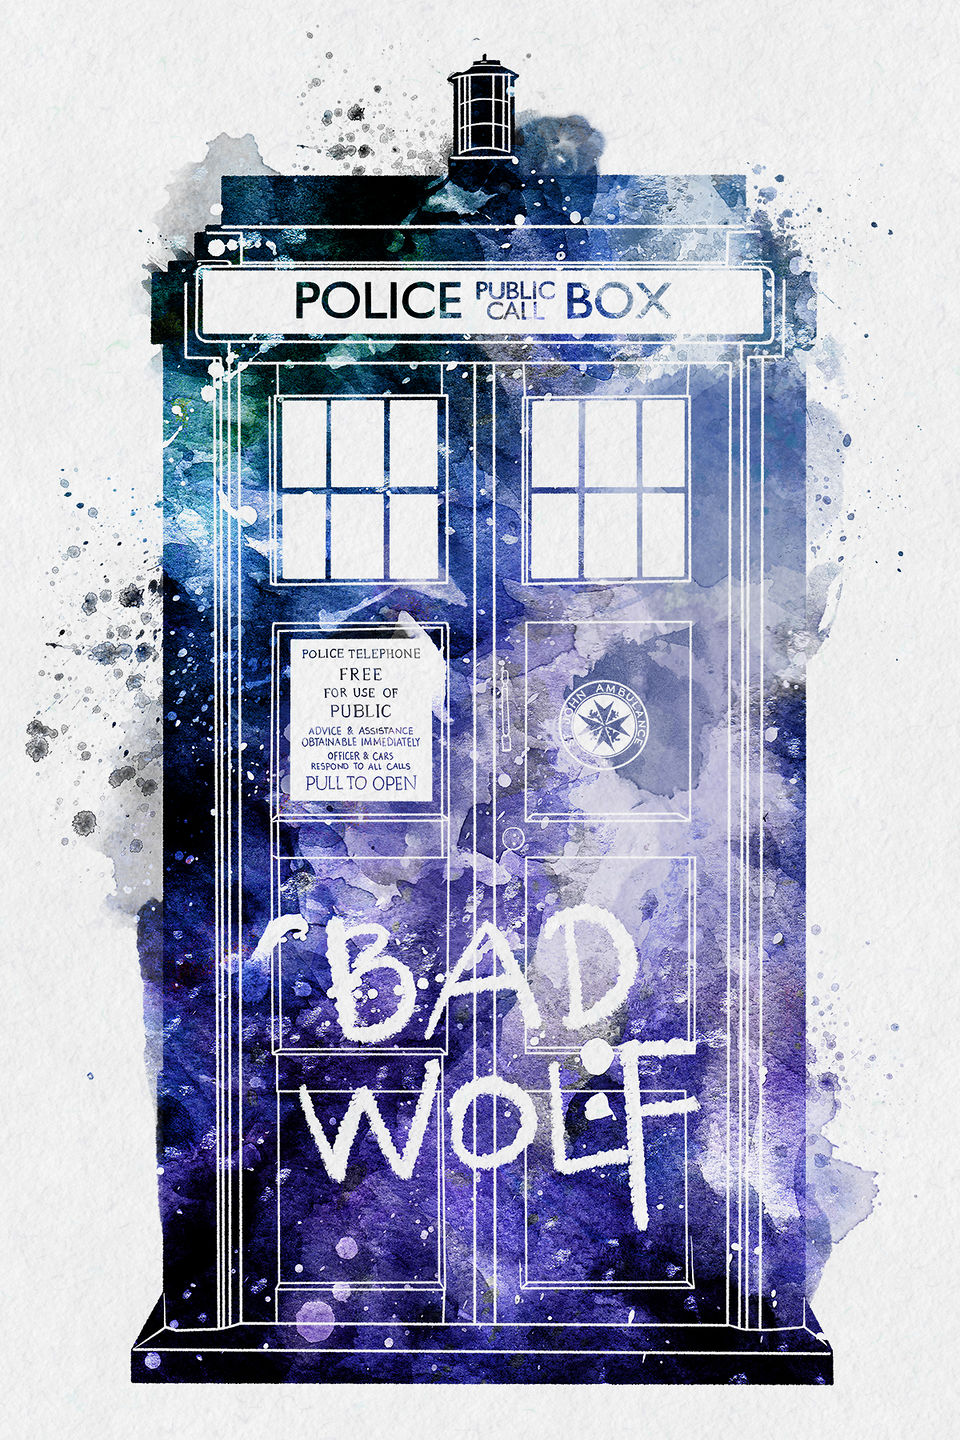 Doctor-Who-Tardis-by-PenelopeLovePrints-Digital-watercolor-artworks-that-are-playful-yet-detailed-wallpaper-wp5404594